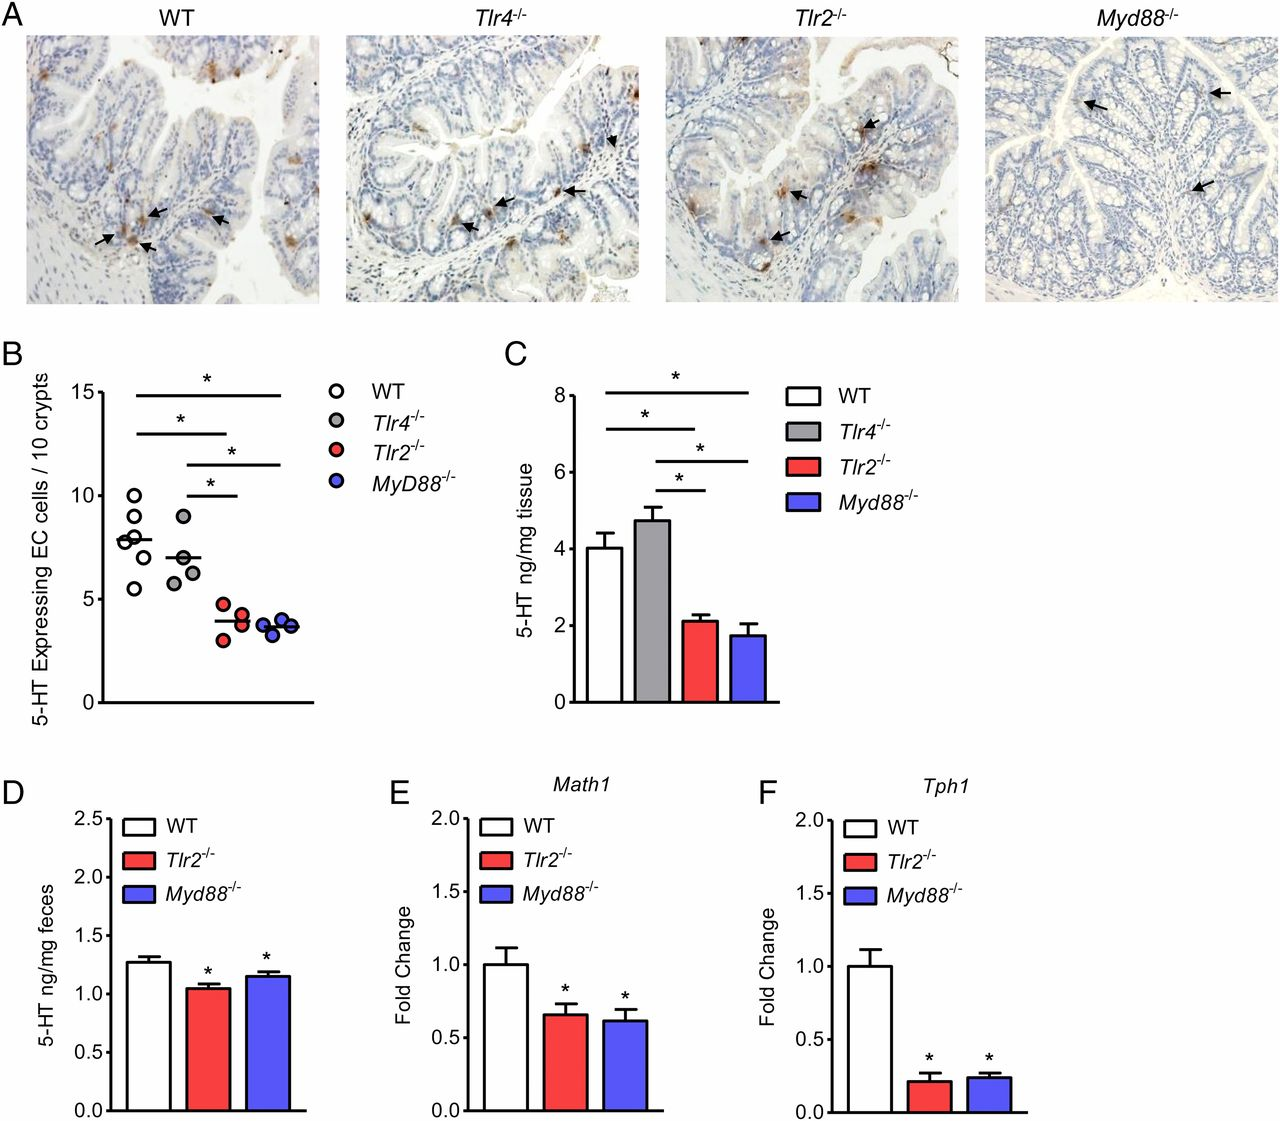 TLR2 Plays a Pivotal Role in Mediating Mucosal Serotonin